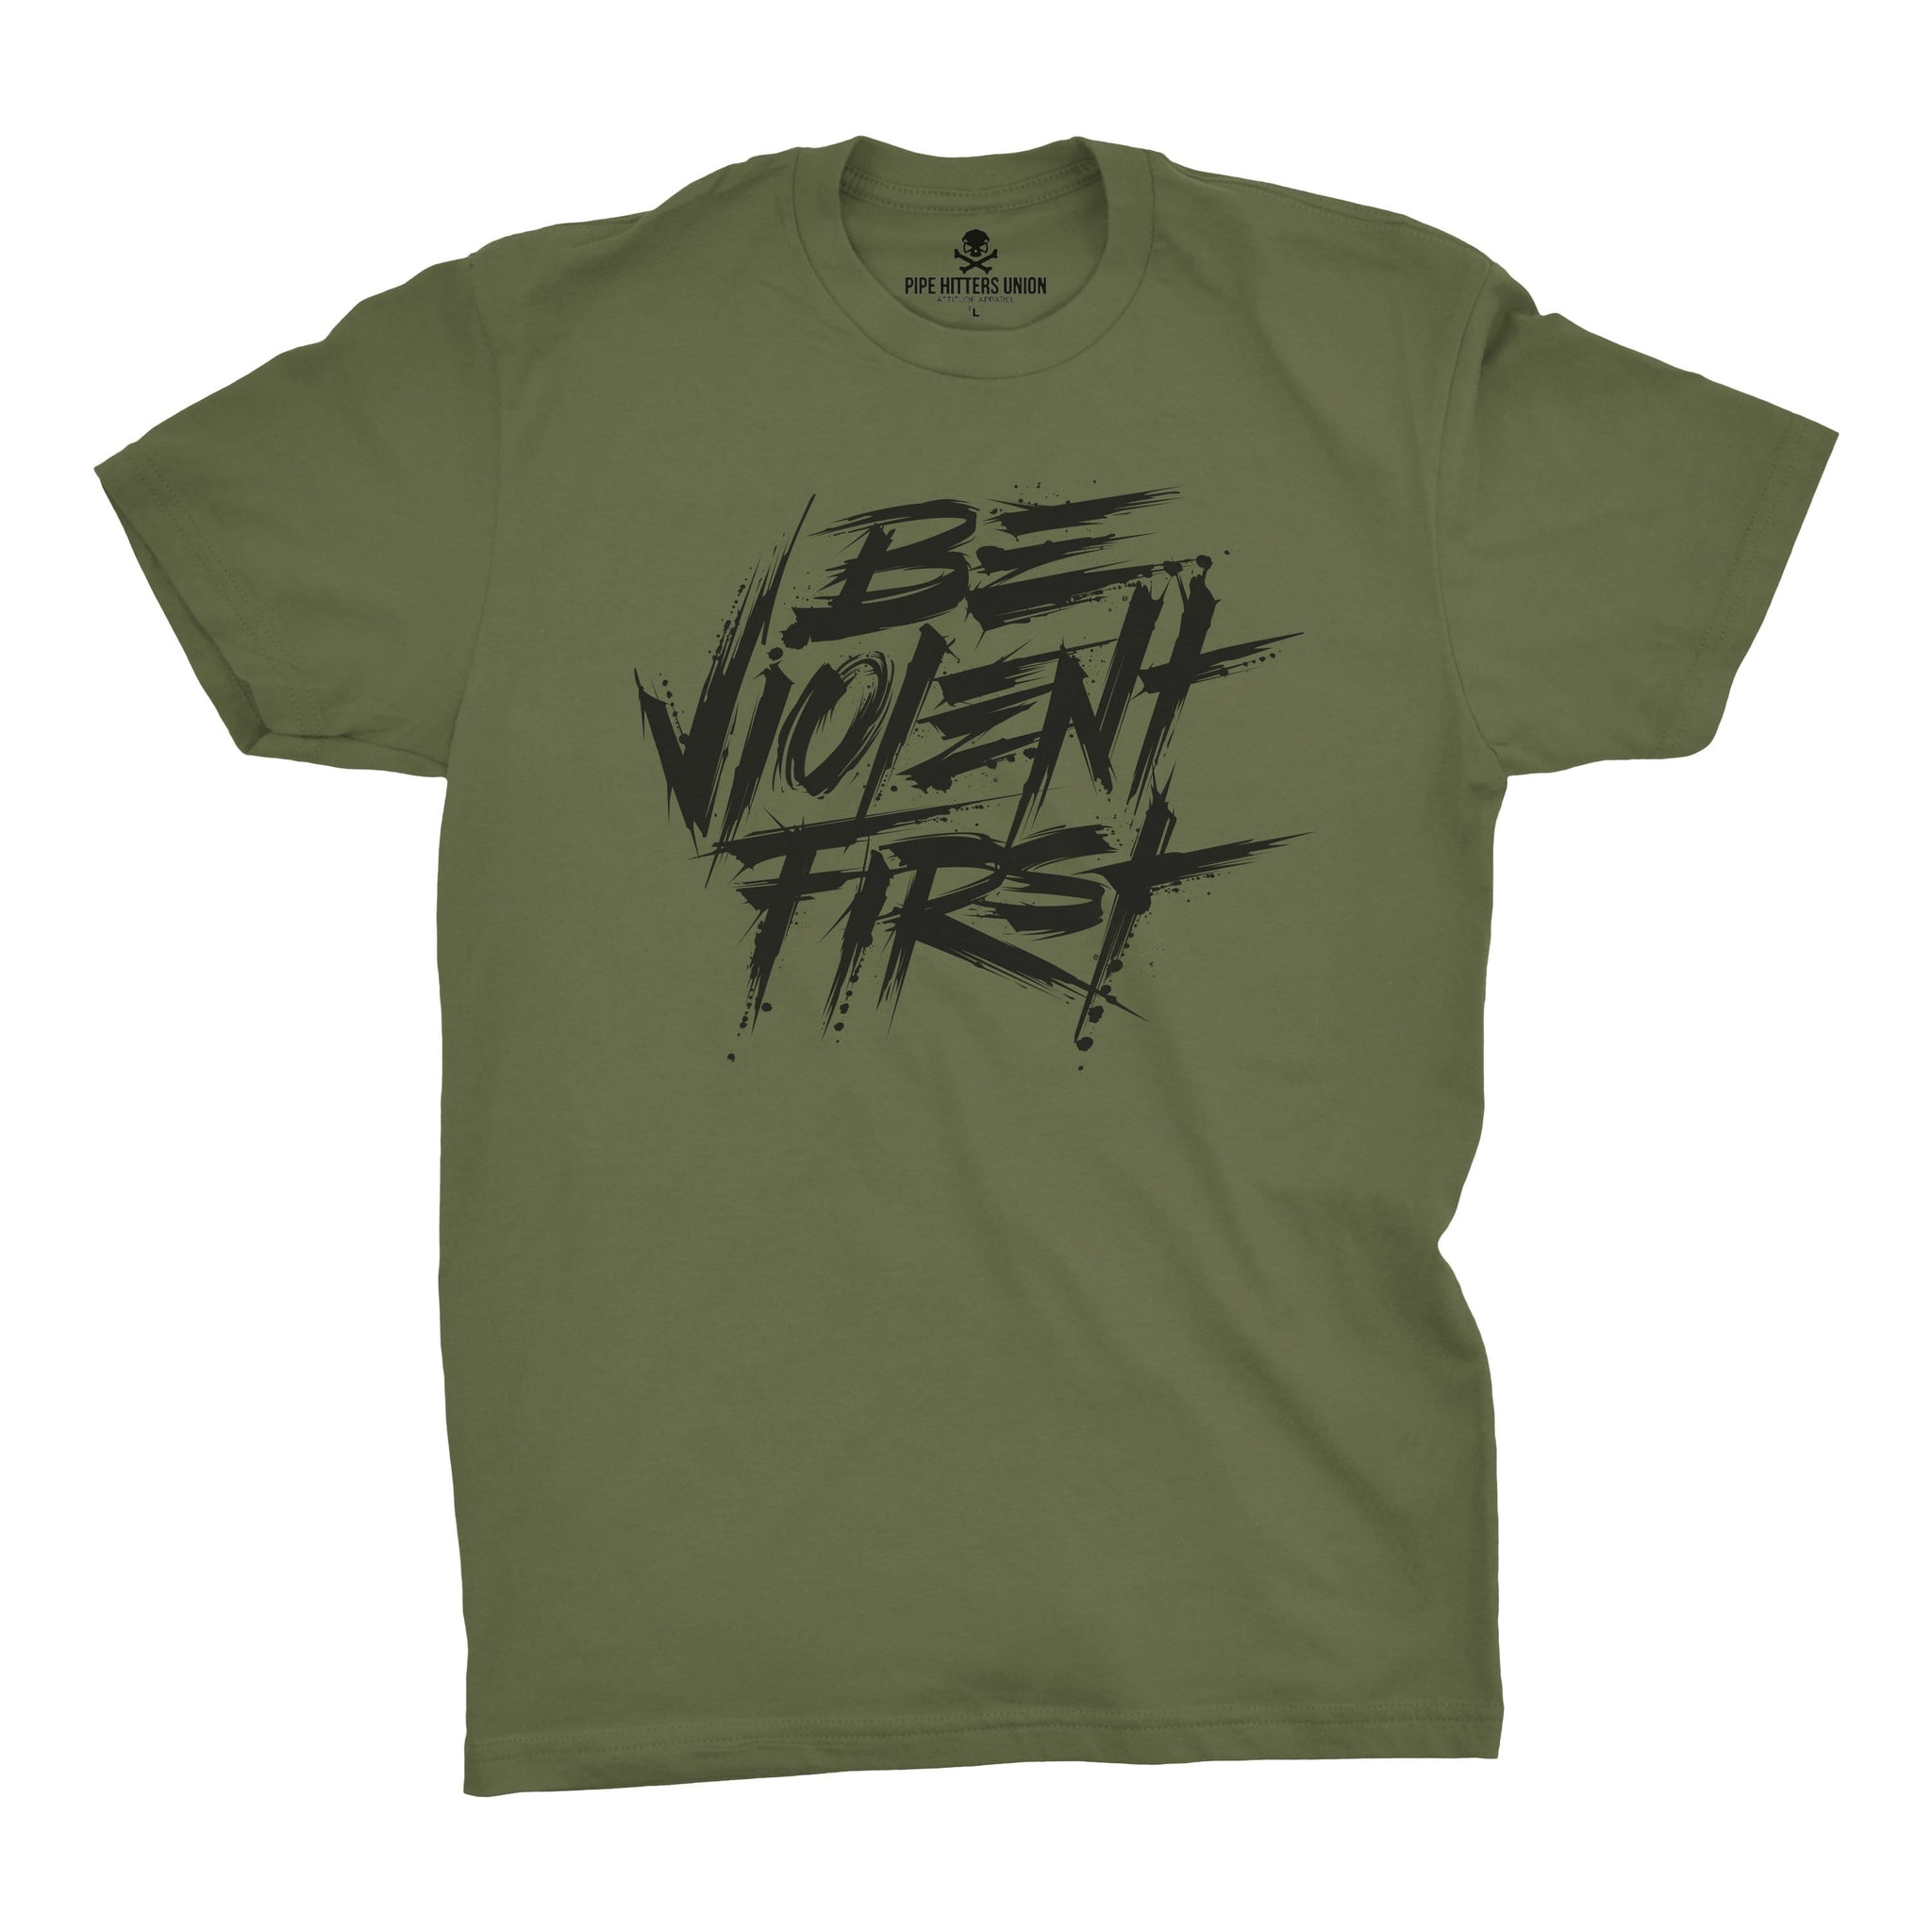 Be Violent First - Pipe Hitters Union